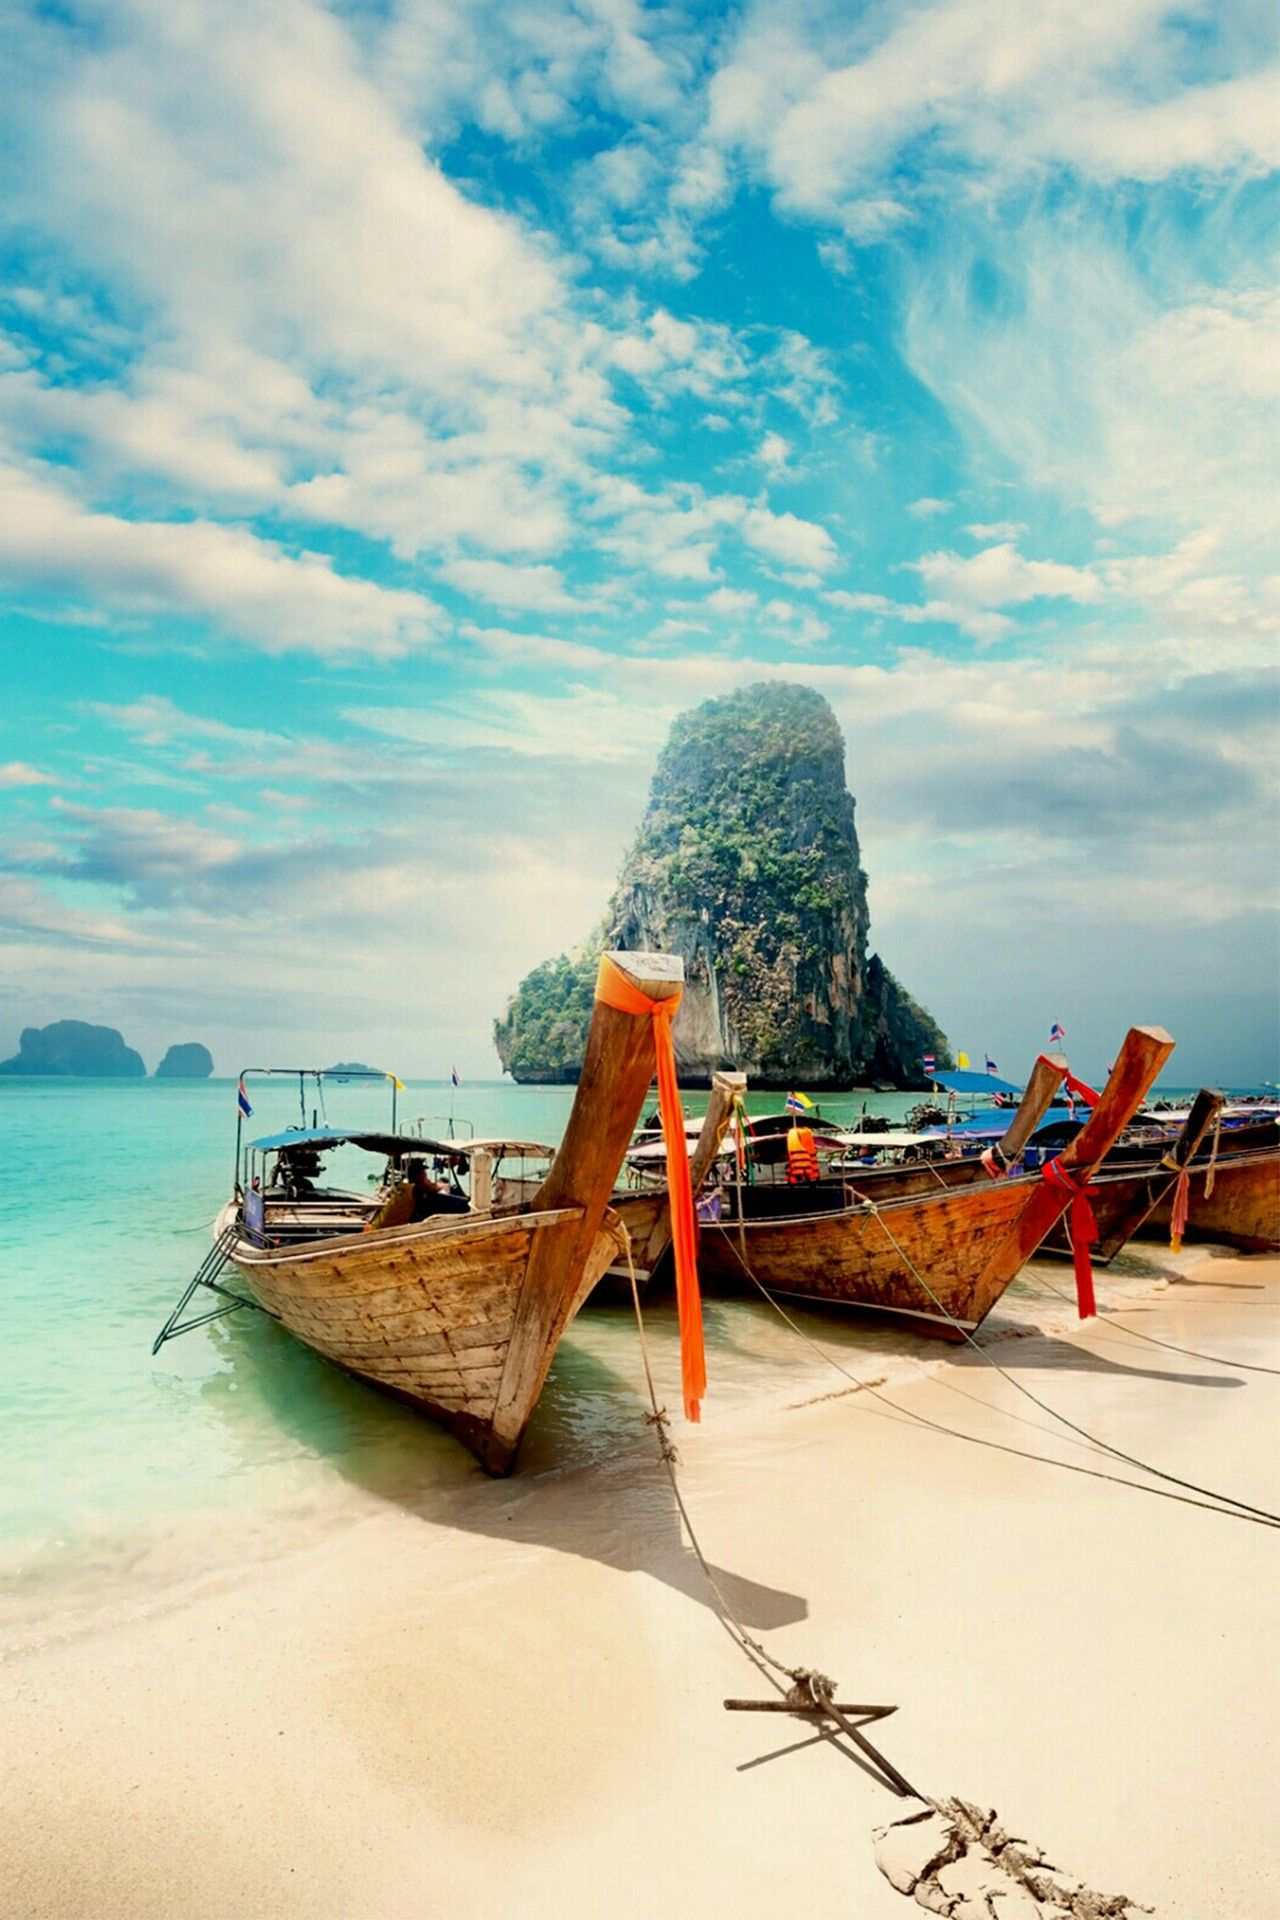 Pin By Phone Wallpaper On Wallpapers Hd Thailand Wallpaper Thailand Beaches Mobile Wallpaper